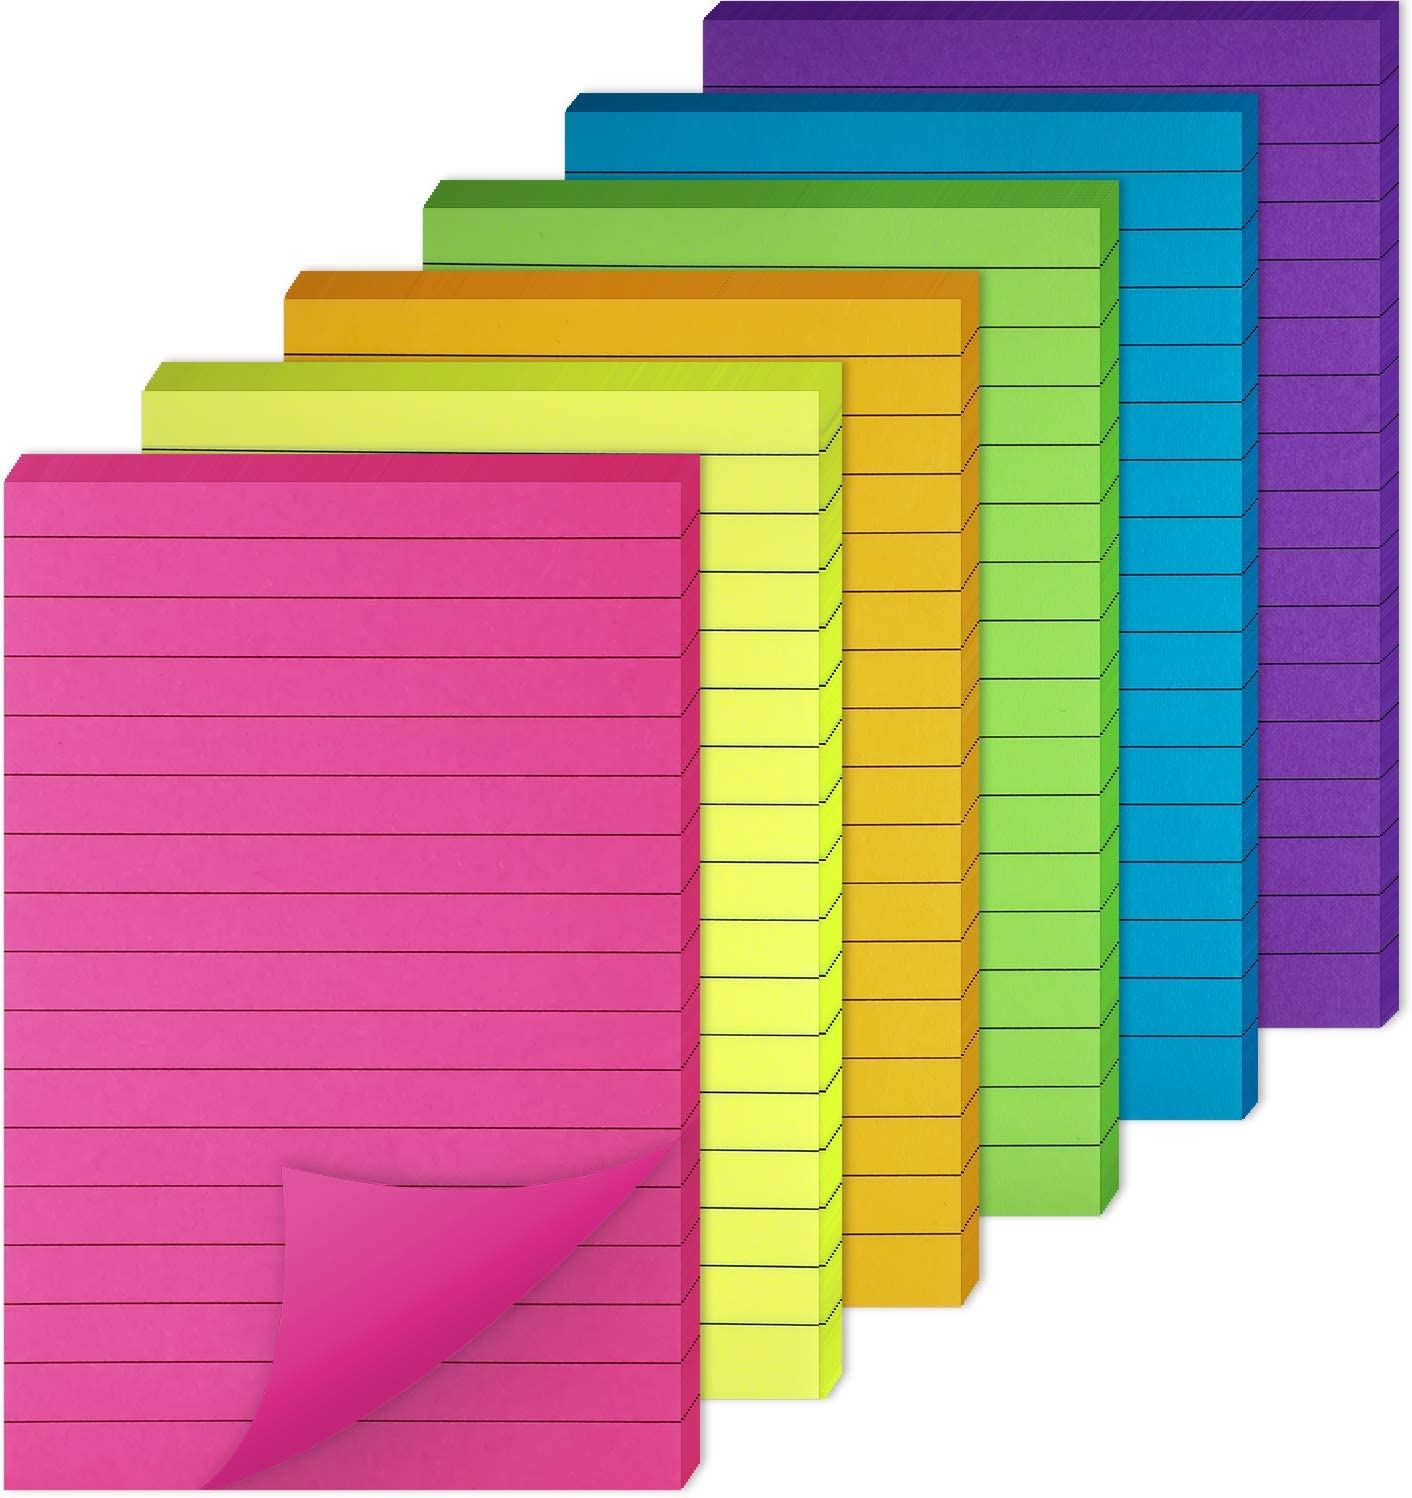 6 Pads, 6 x 4 Inch Sticky Notes Colorful Lined Self-Sticky Note Pads for Home School Office 6 Bright Colors Stickies